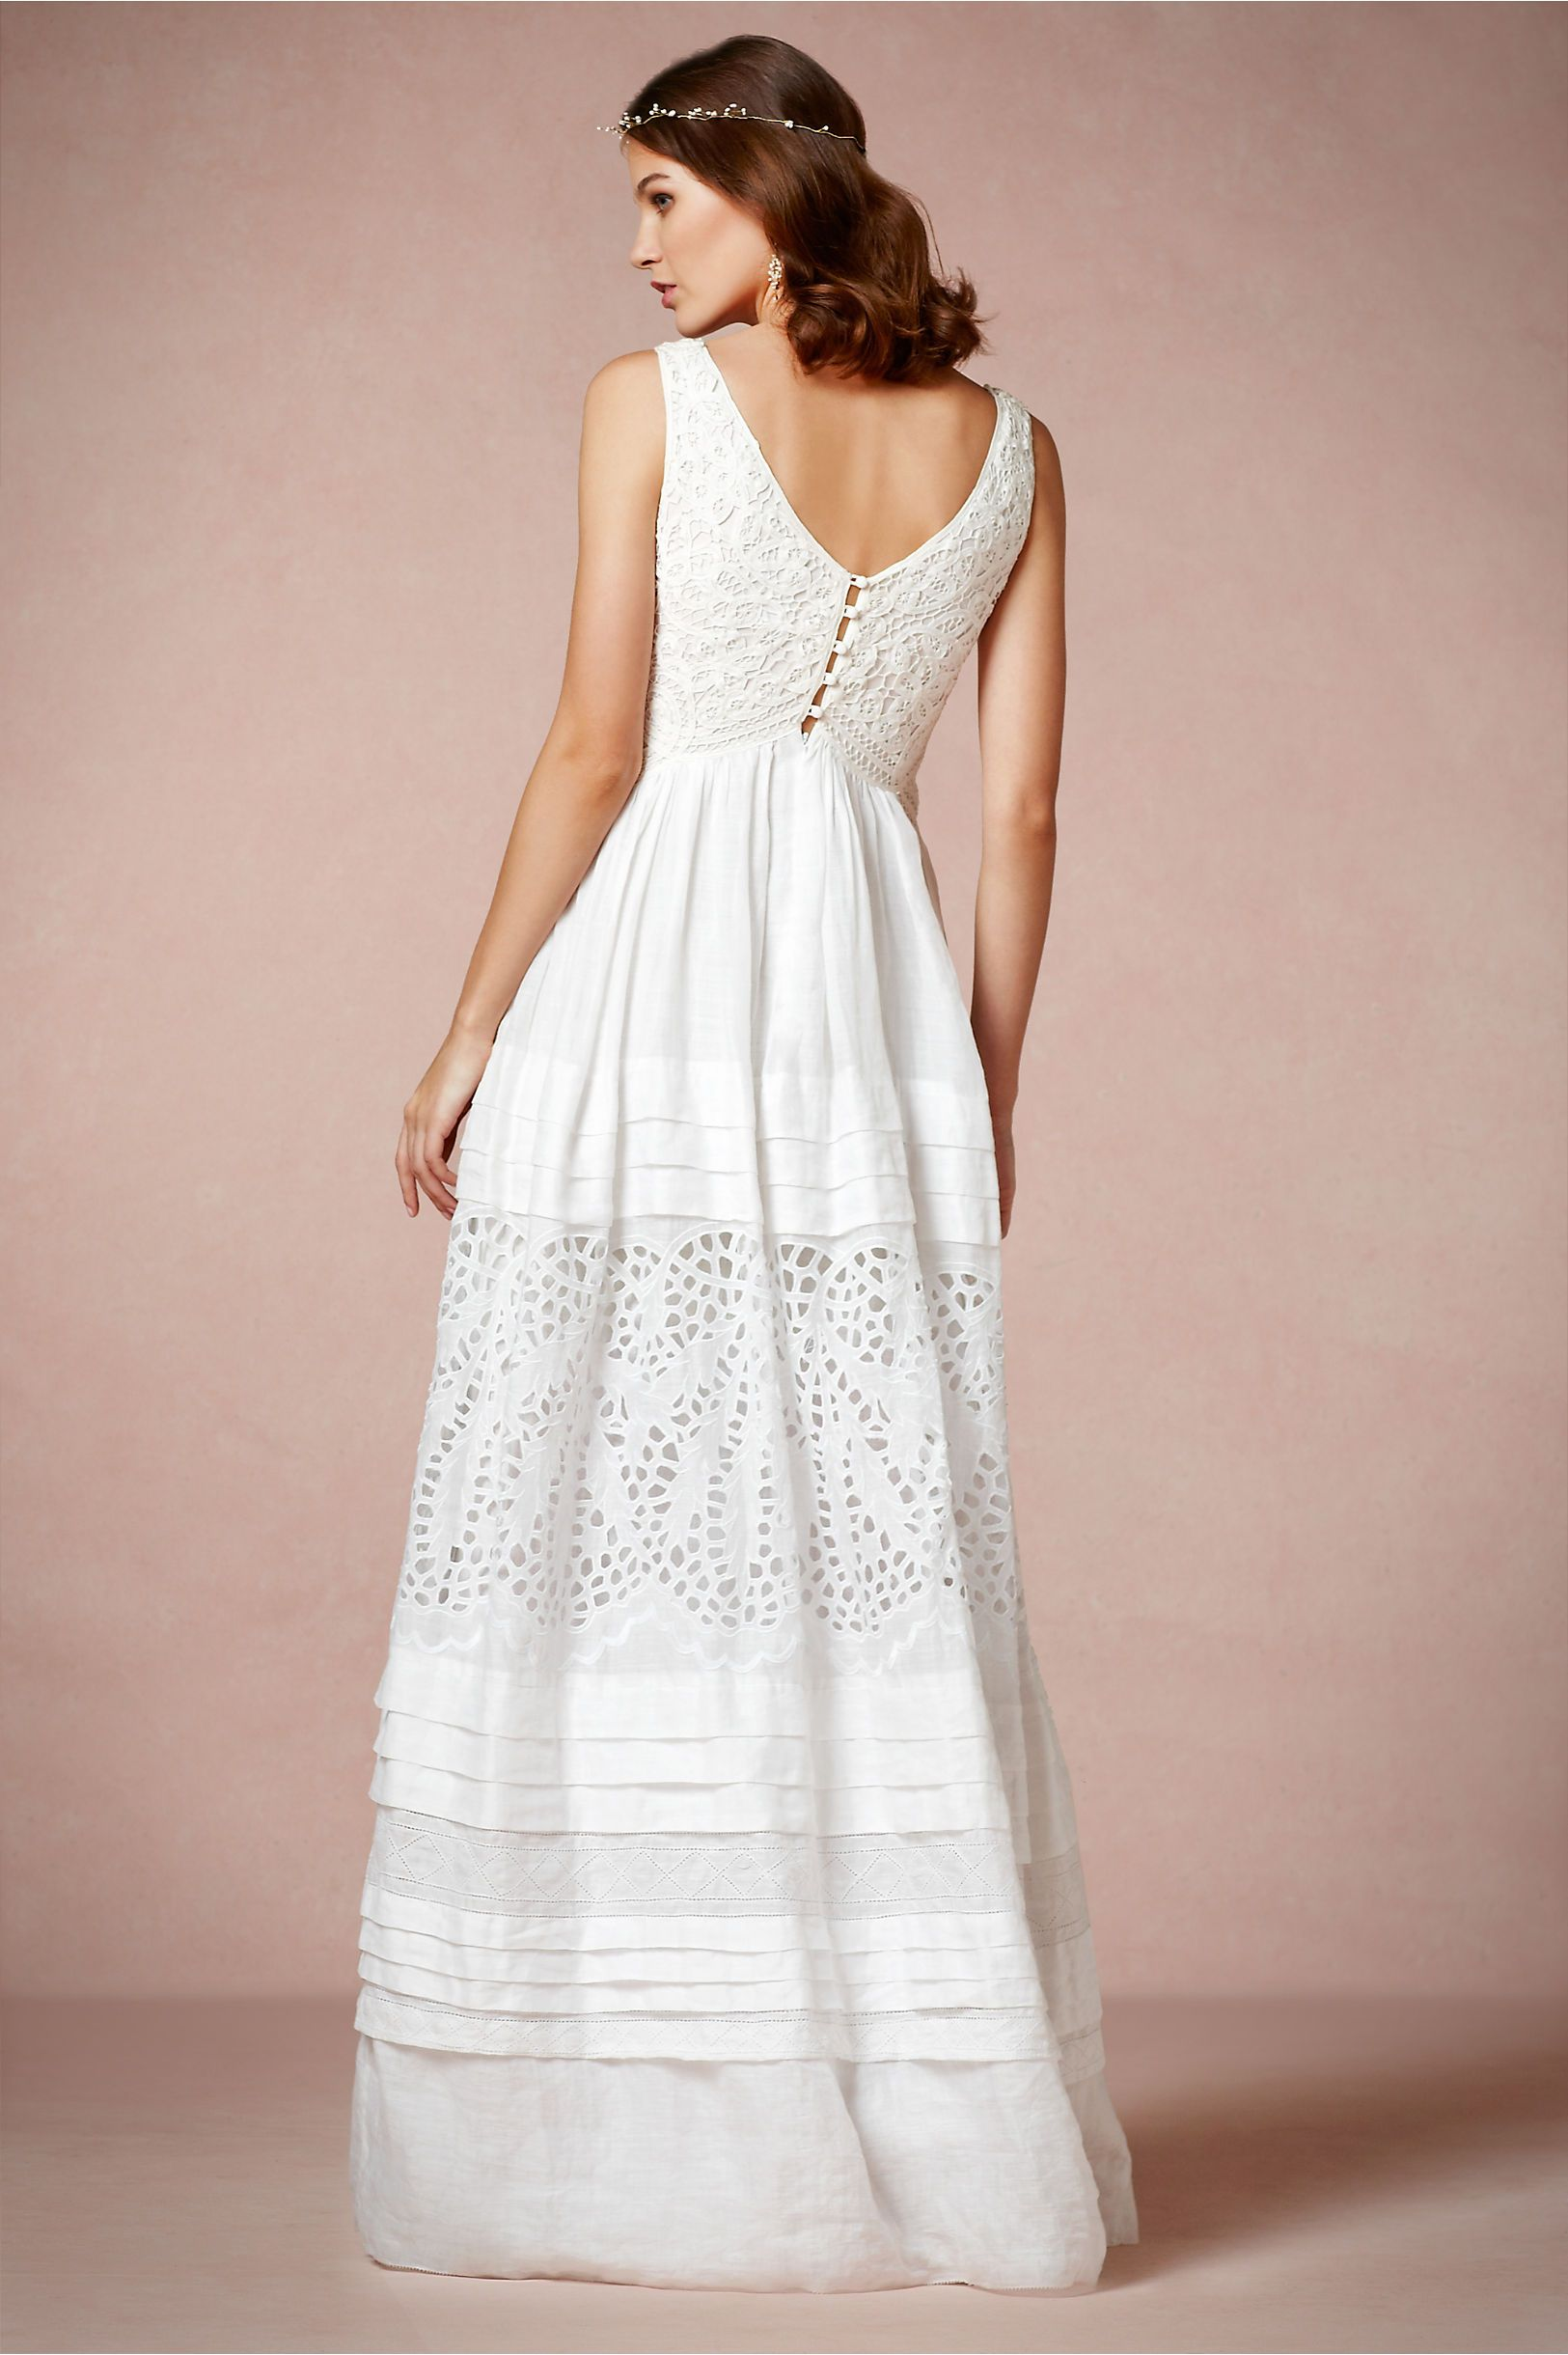 Lace And Ramie Collette Dinnigan Gown From BHLDN